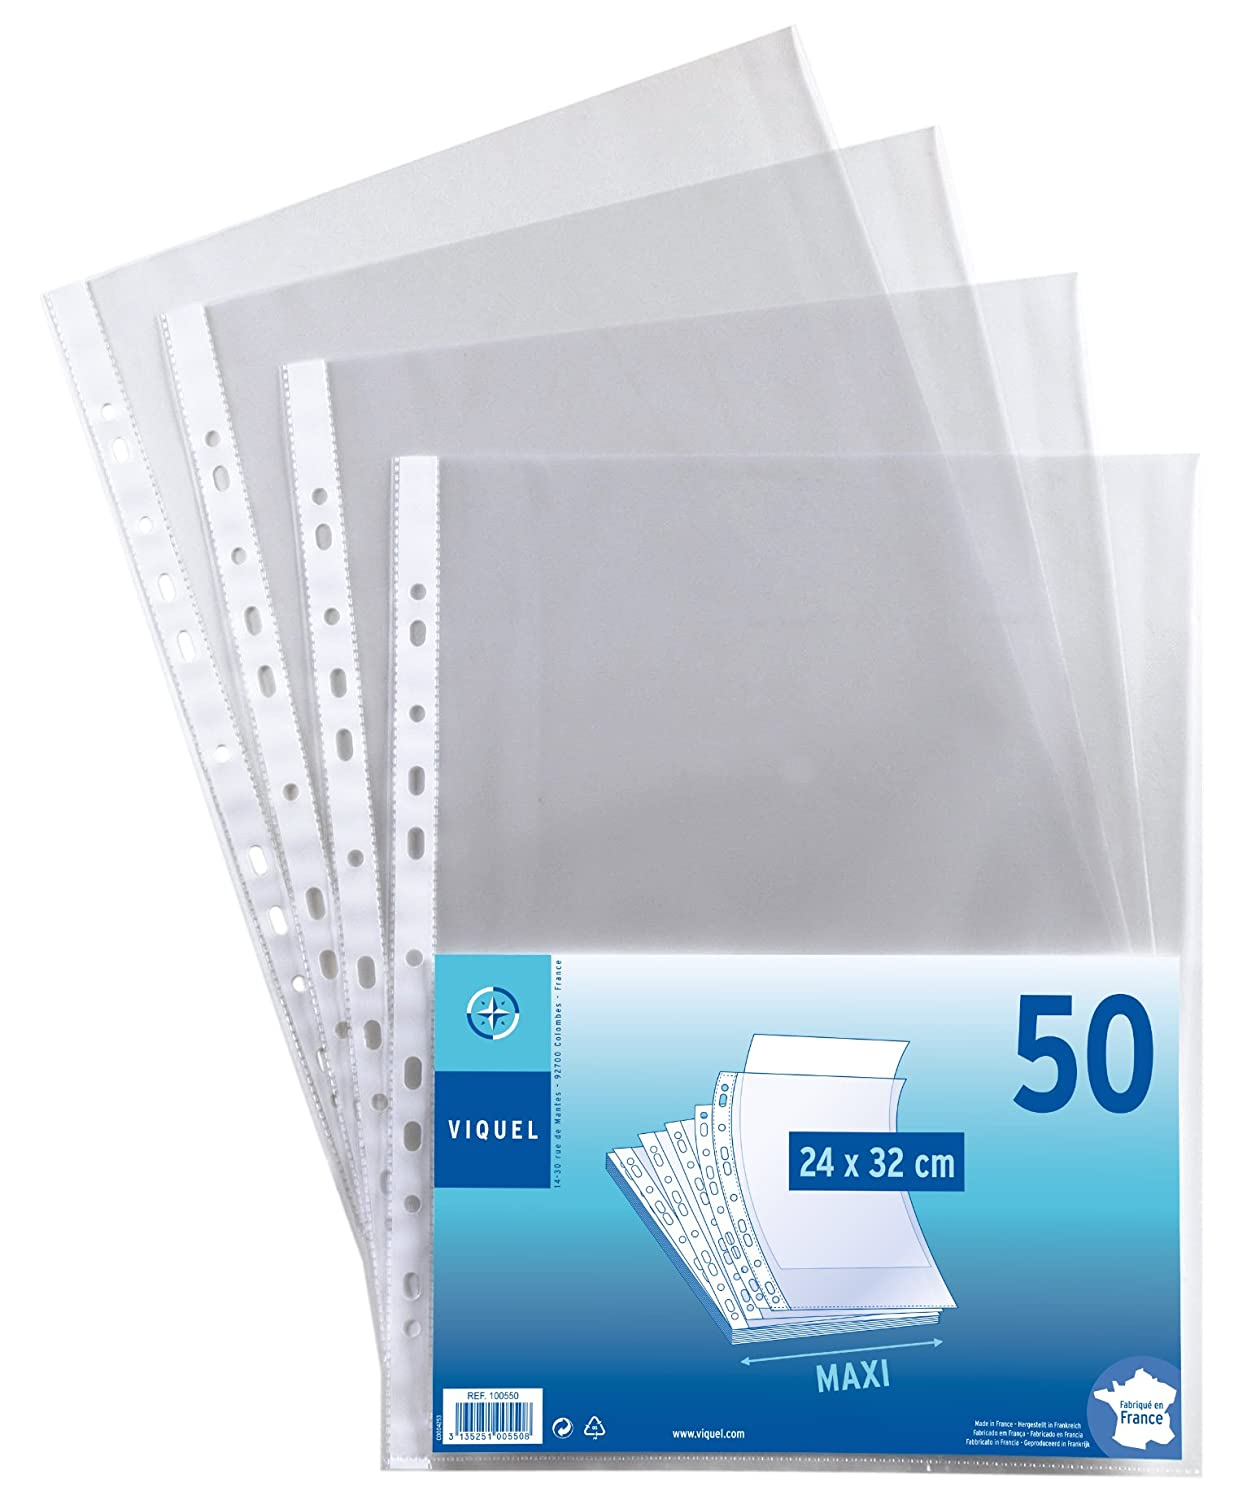 Viquel  –   Set di 50  buste perforate in polipropilene, 24  x 32 24 x 32 100550-06